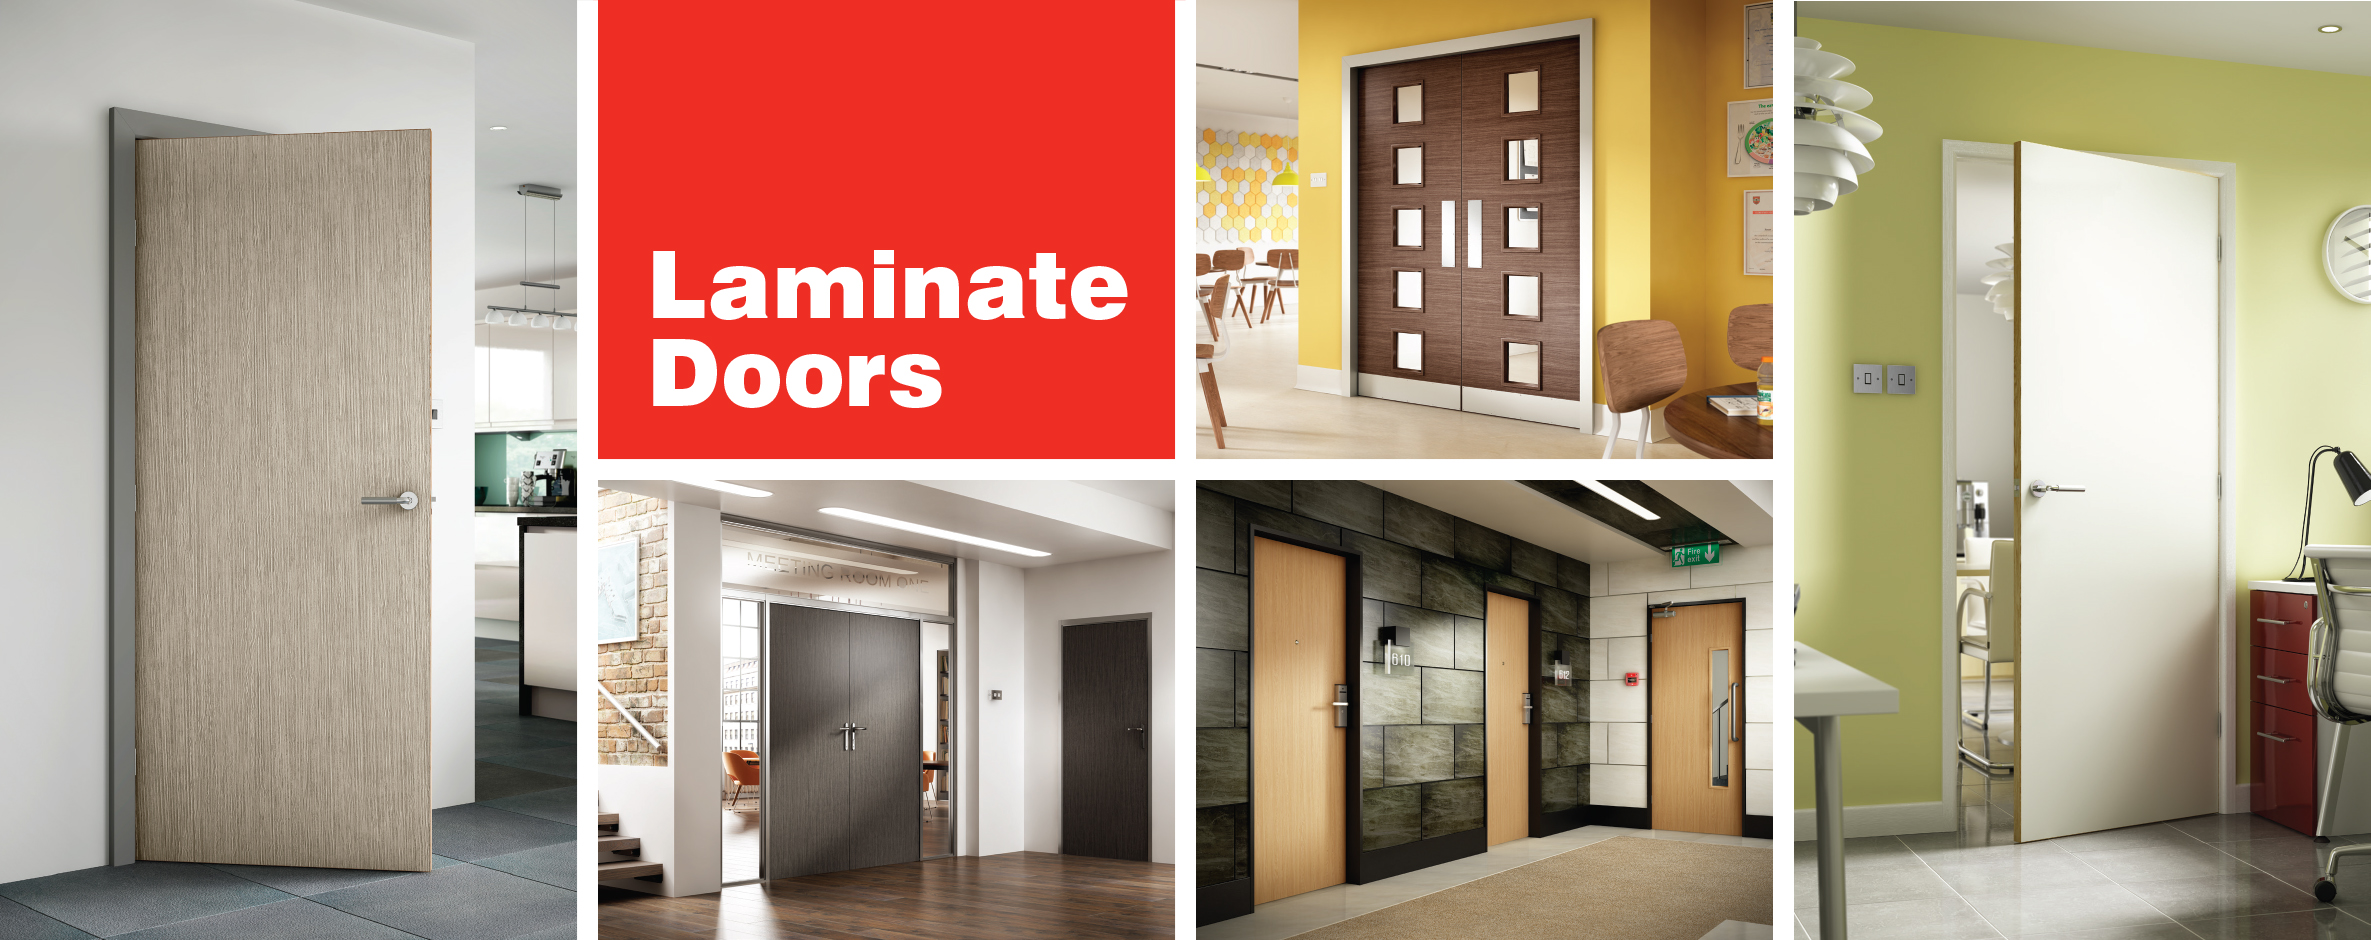 Manufacturing excellence ... & Internal Doors -White Oak u0026 Fire Doors at Premdor